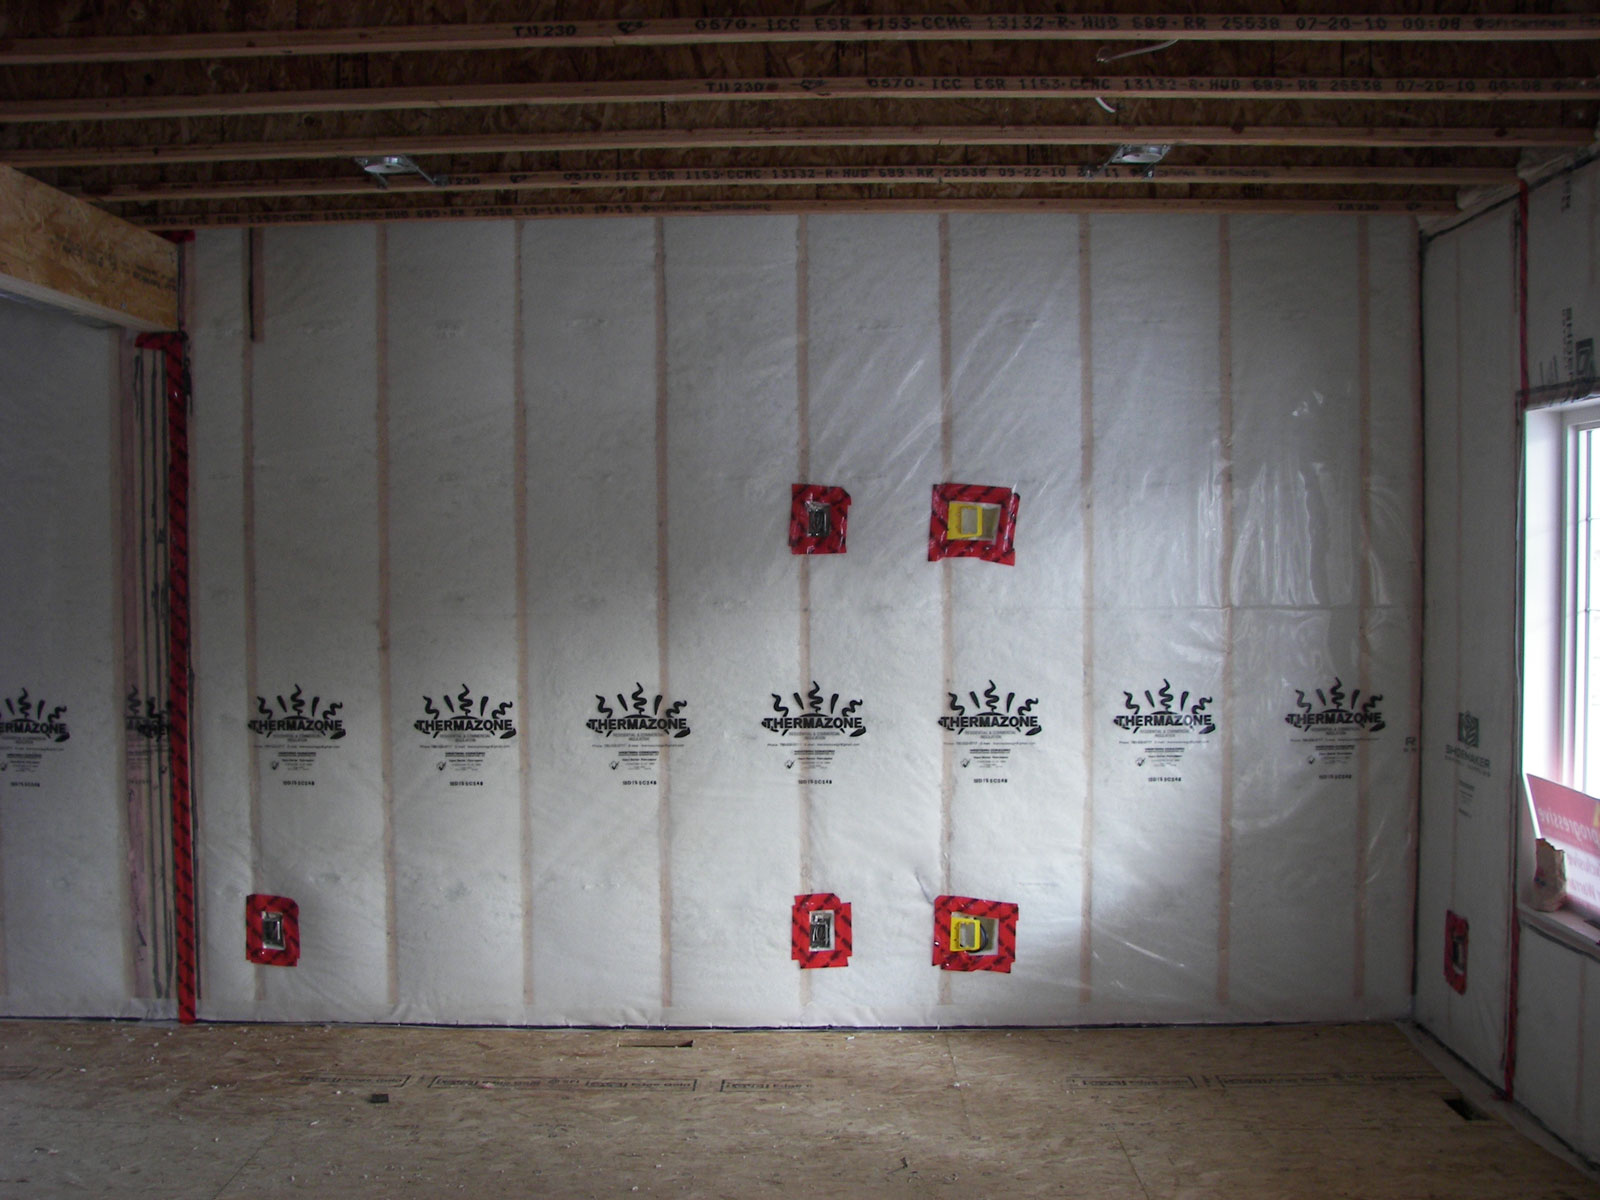 Thermazone Plastic Sheeting over insulation